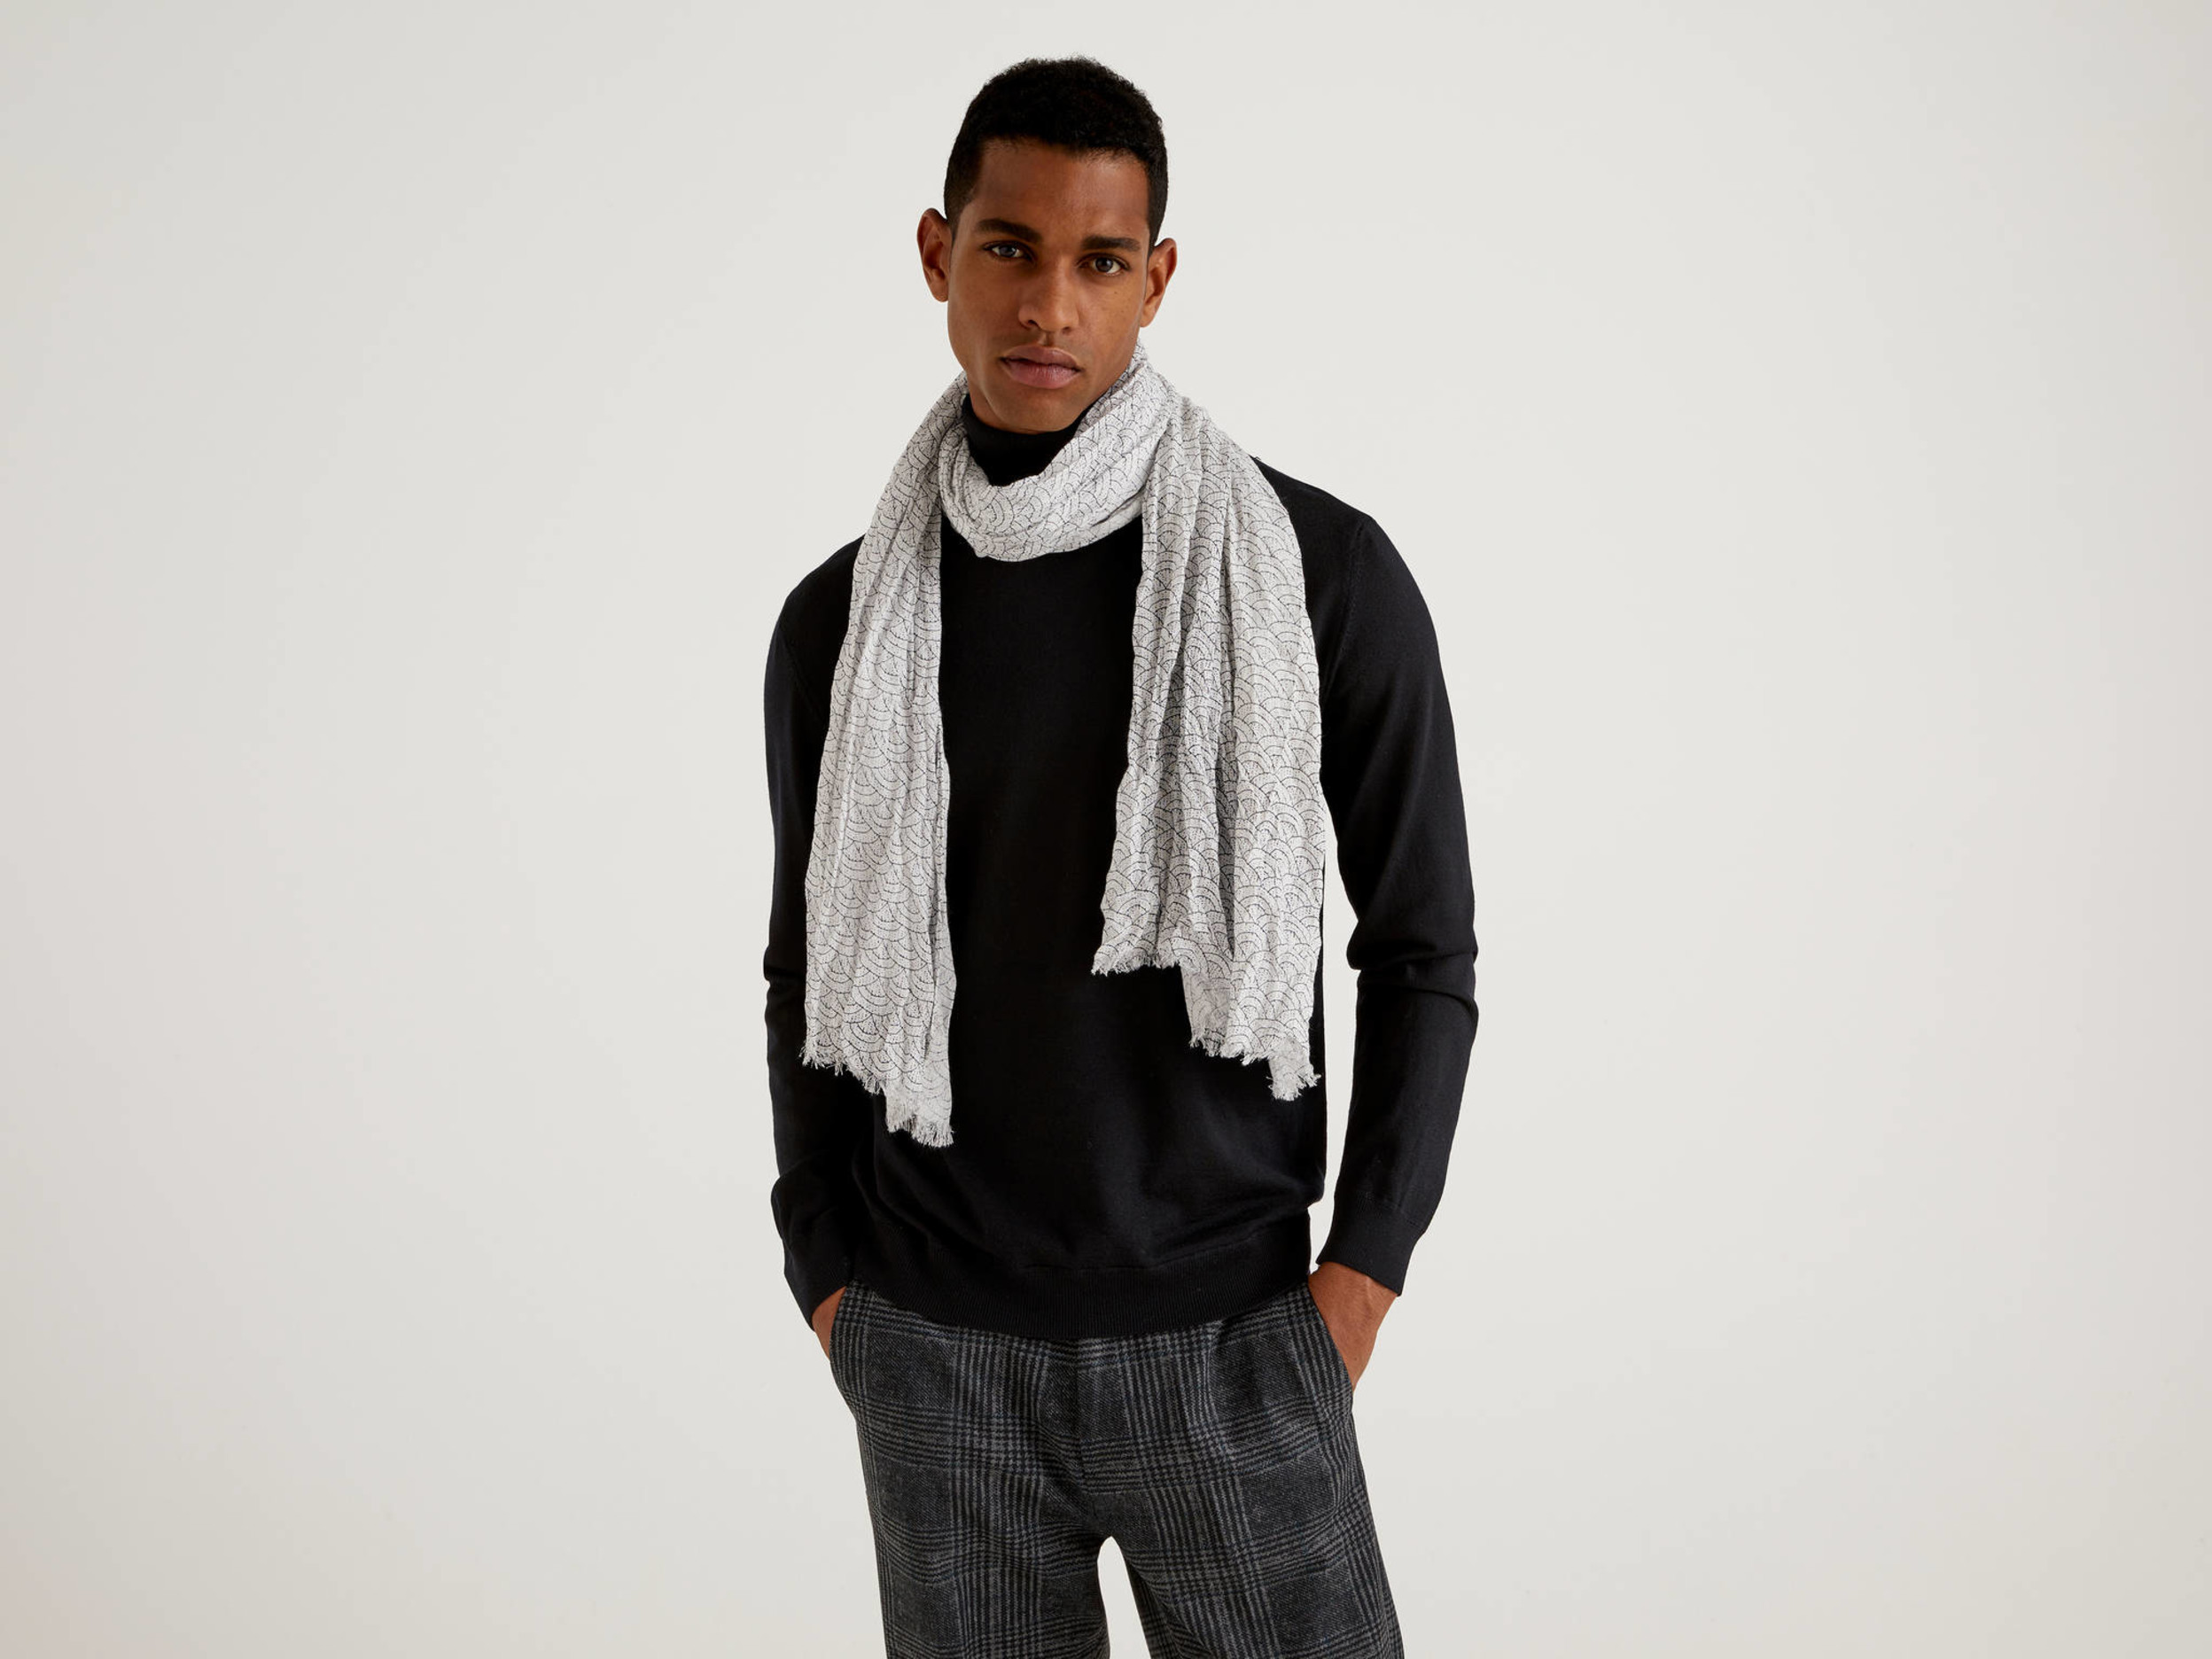 Benetton, Patterned Scarf In Sustainable Viscose, size , Light Gray, Men